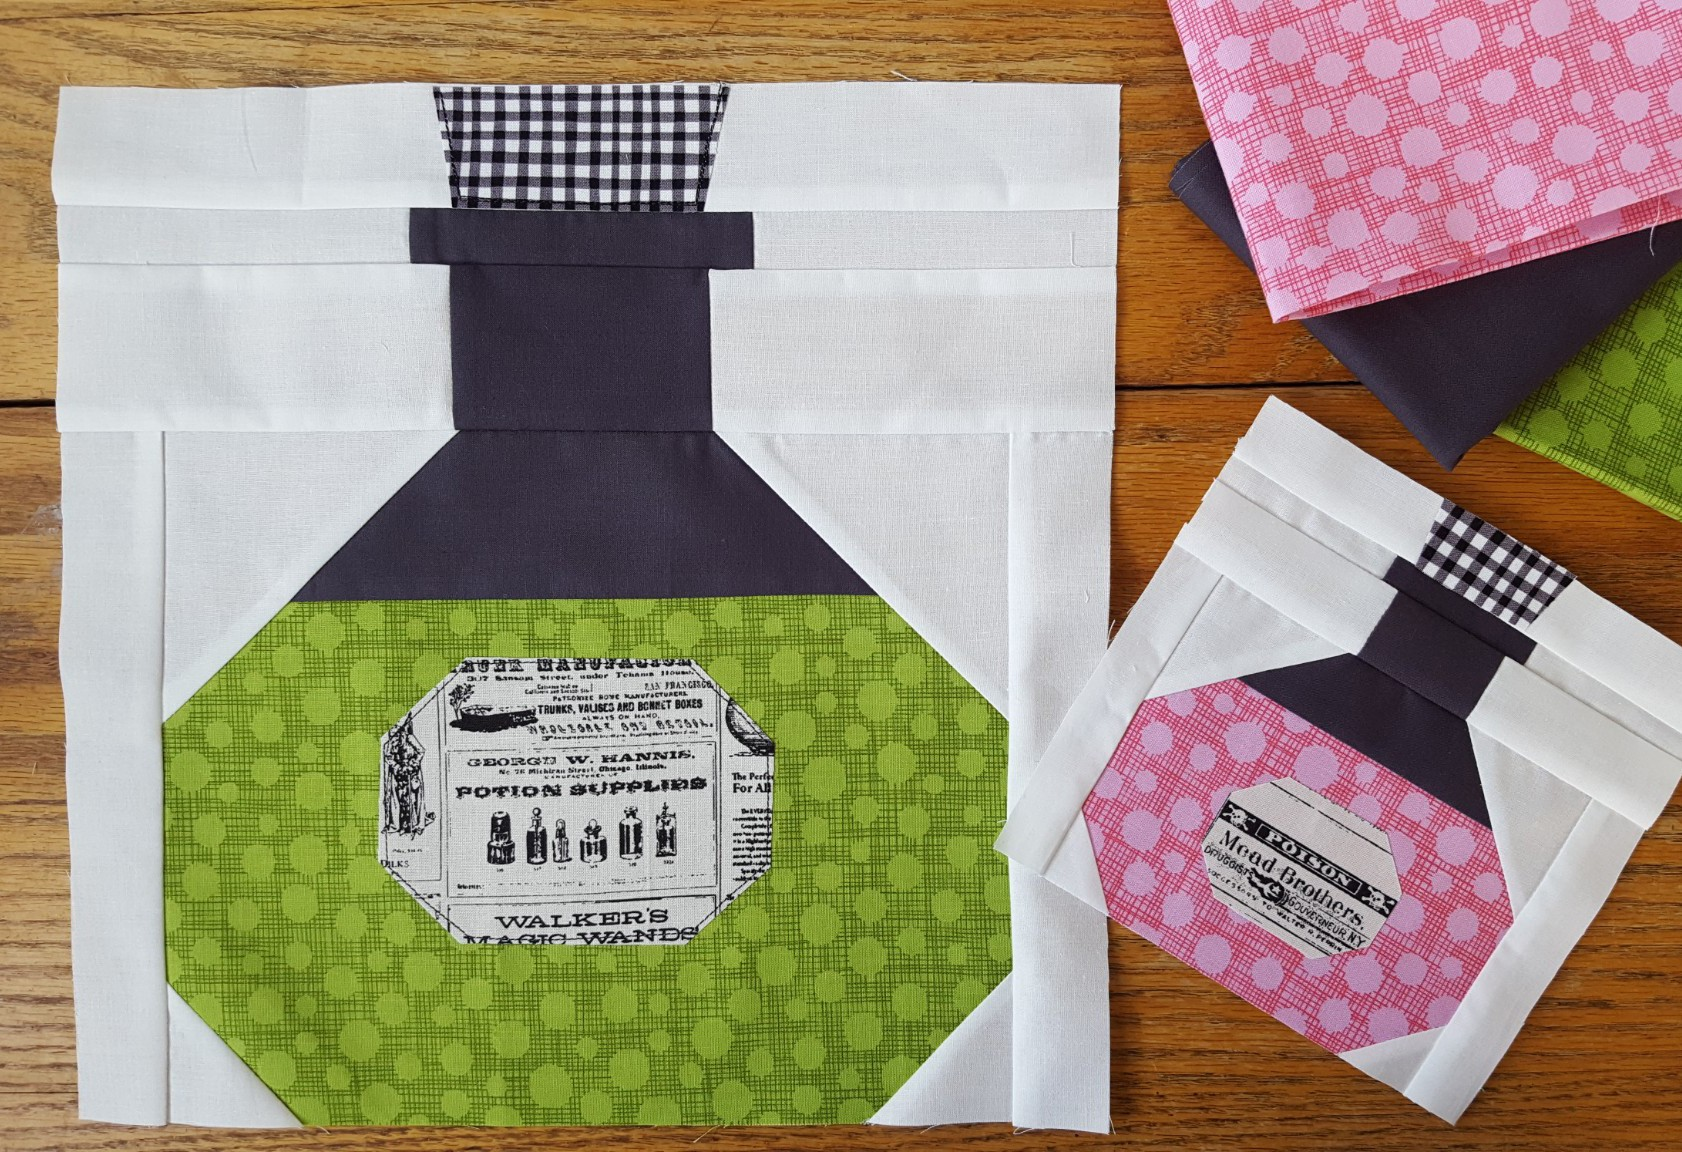 Potion Bottle quilt blocks